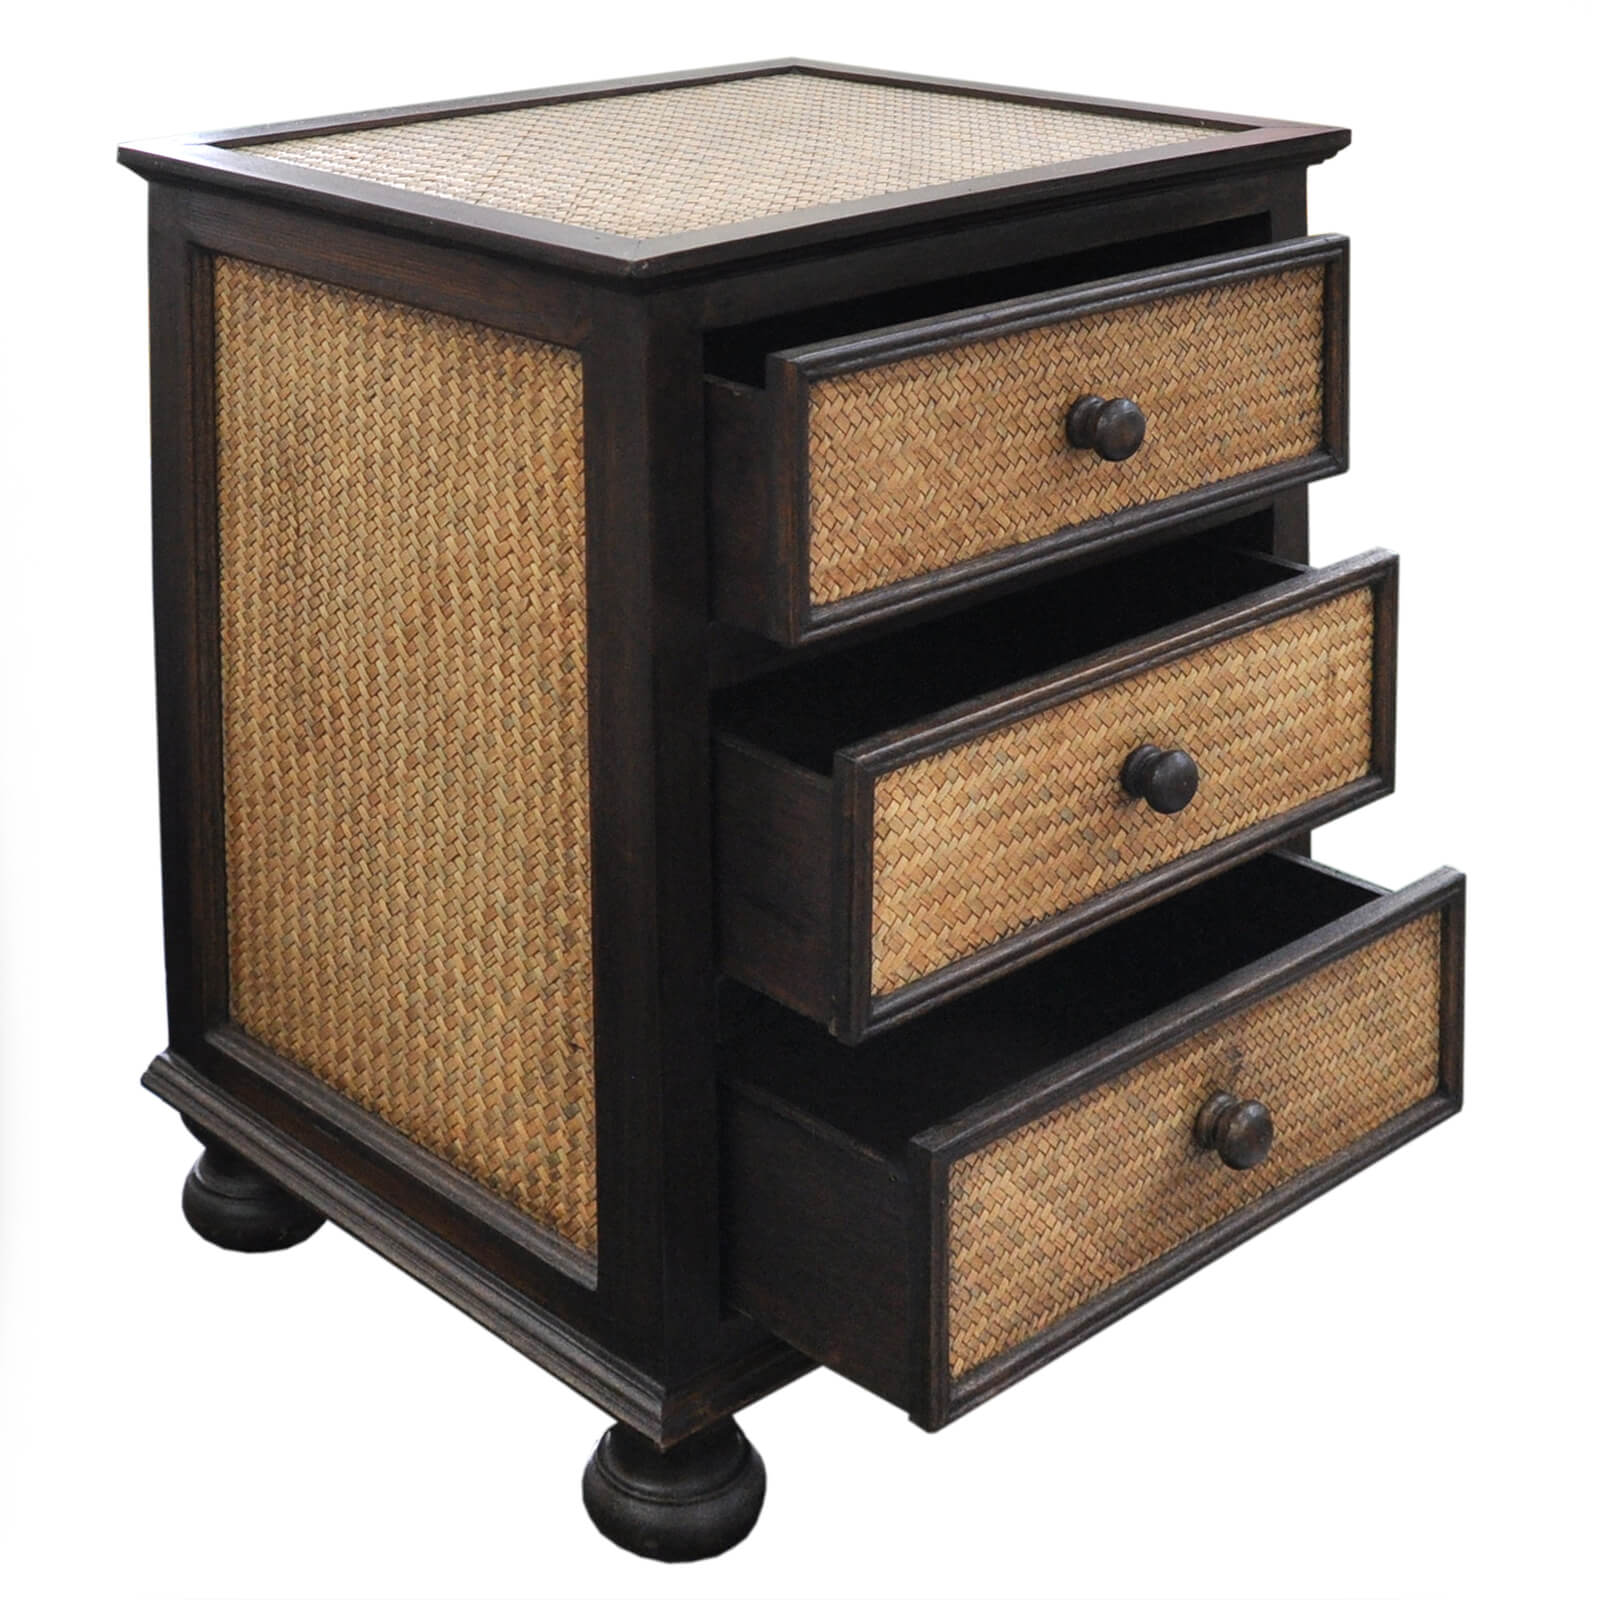 commodes table chevet meuble de rangement artisanal fabriqu en tha lande ebay. Black Bedroom Furniture Sets. Home Design Ideas